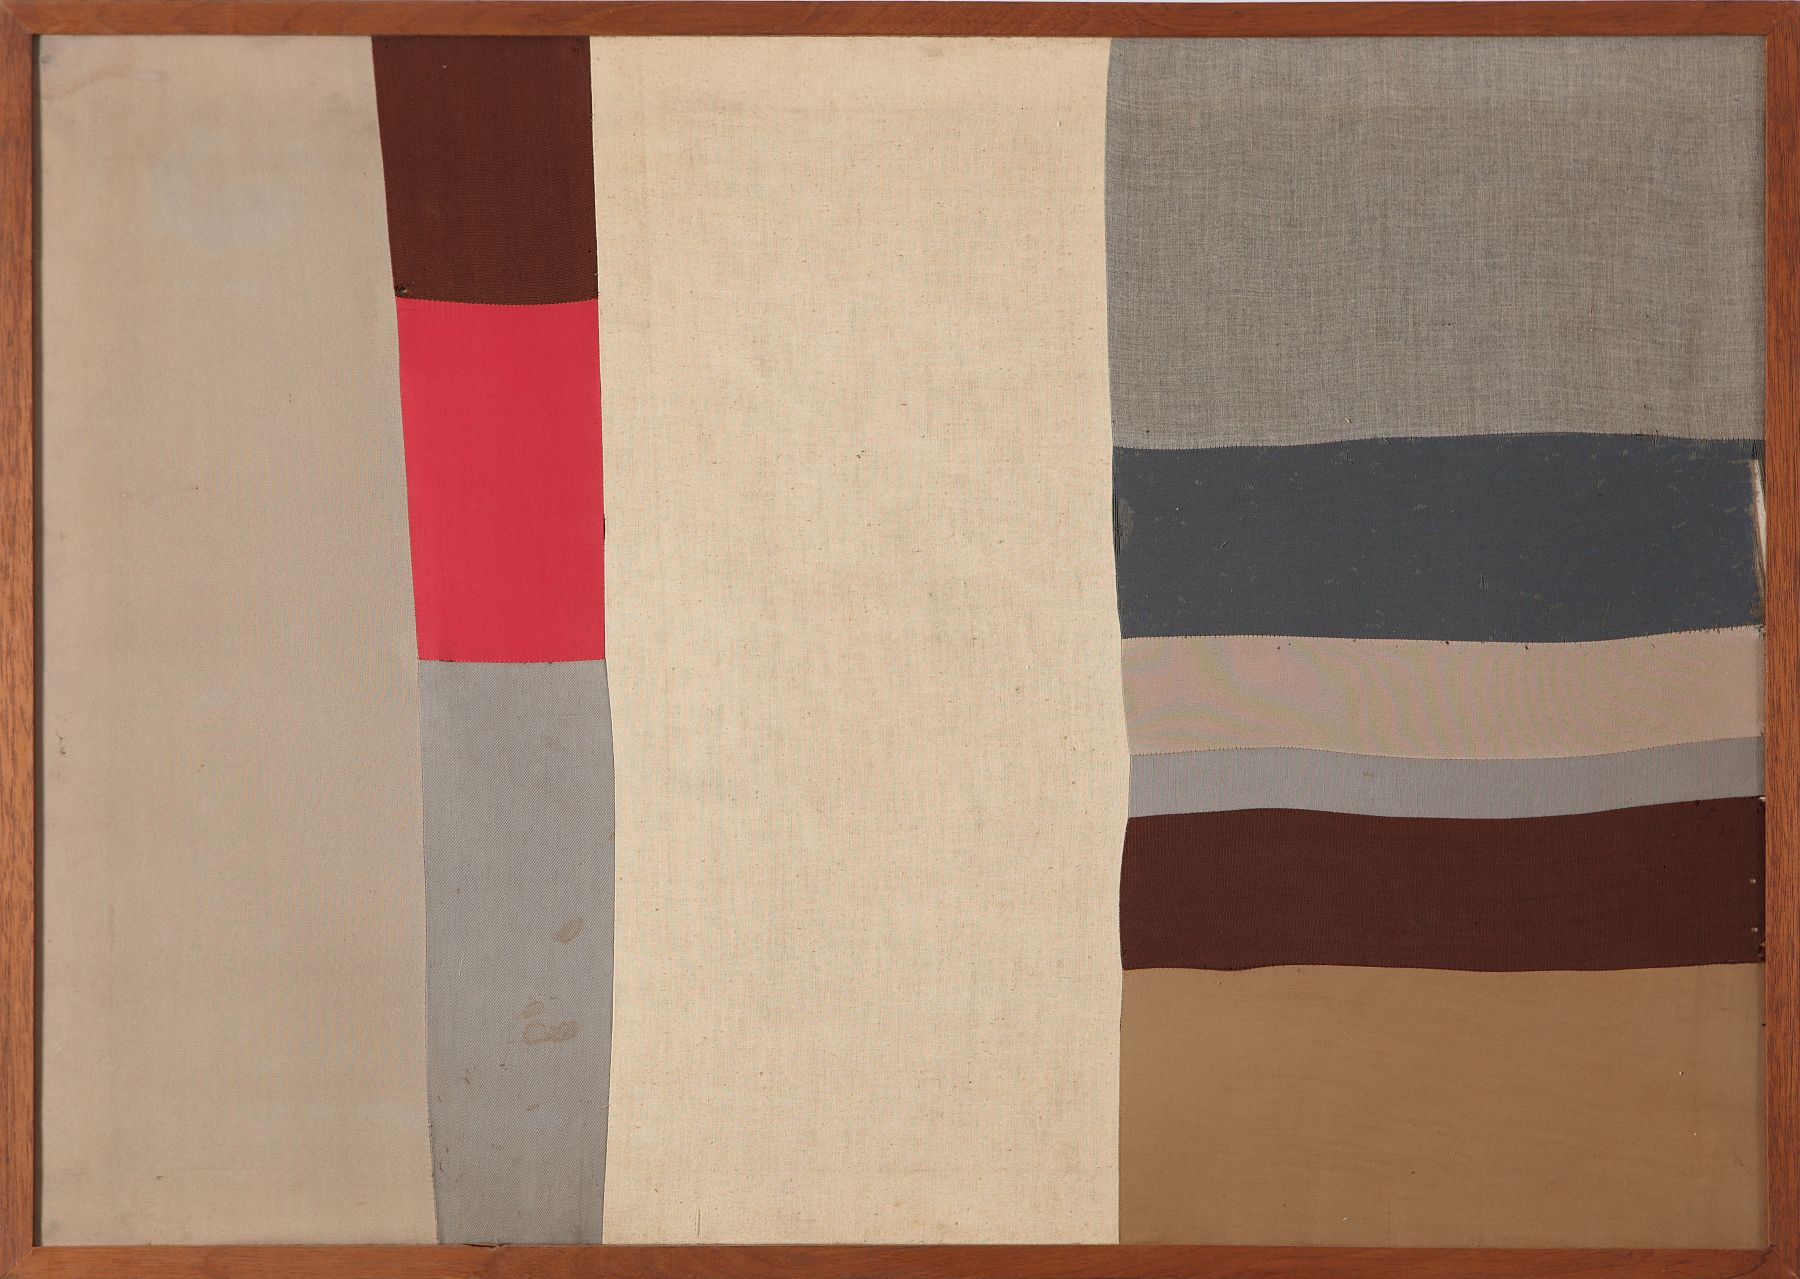 Nuvolo (Giorgio Ascani). Untitled. 1959. Painted and sewn canvas, 71 by 100 cm (28 by 39⅜ in.)